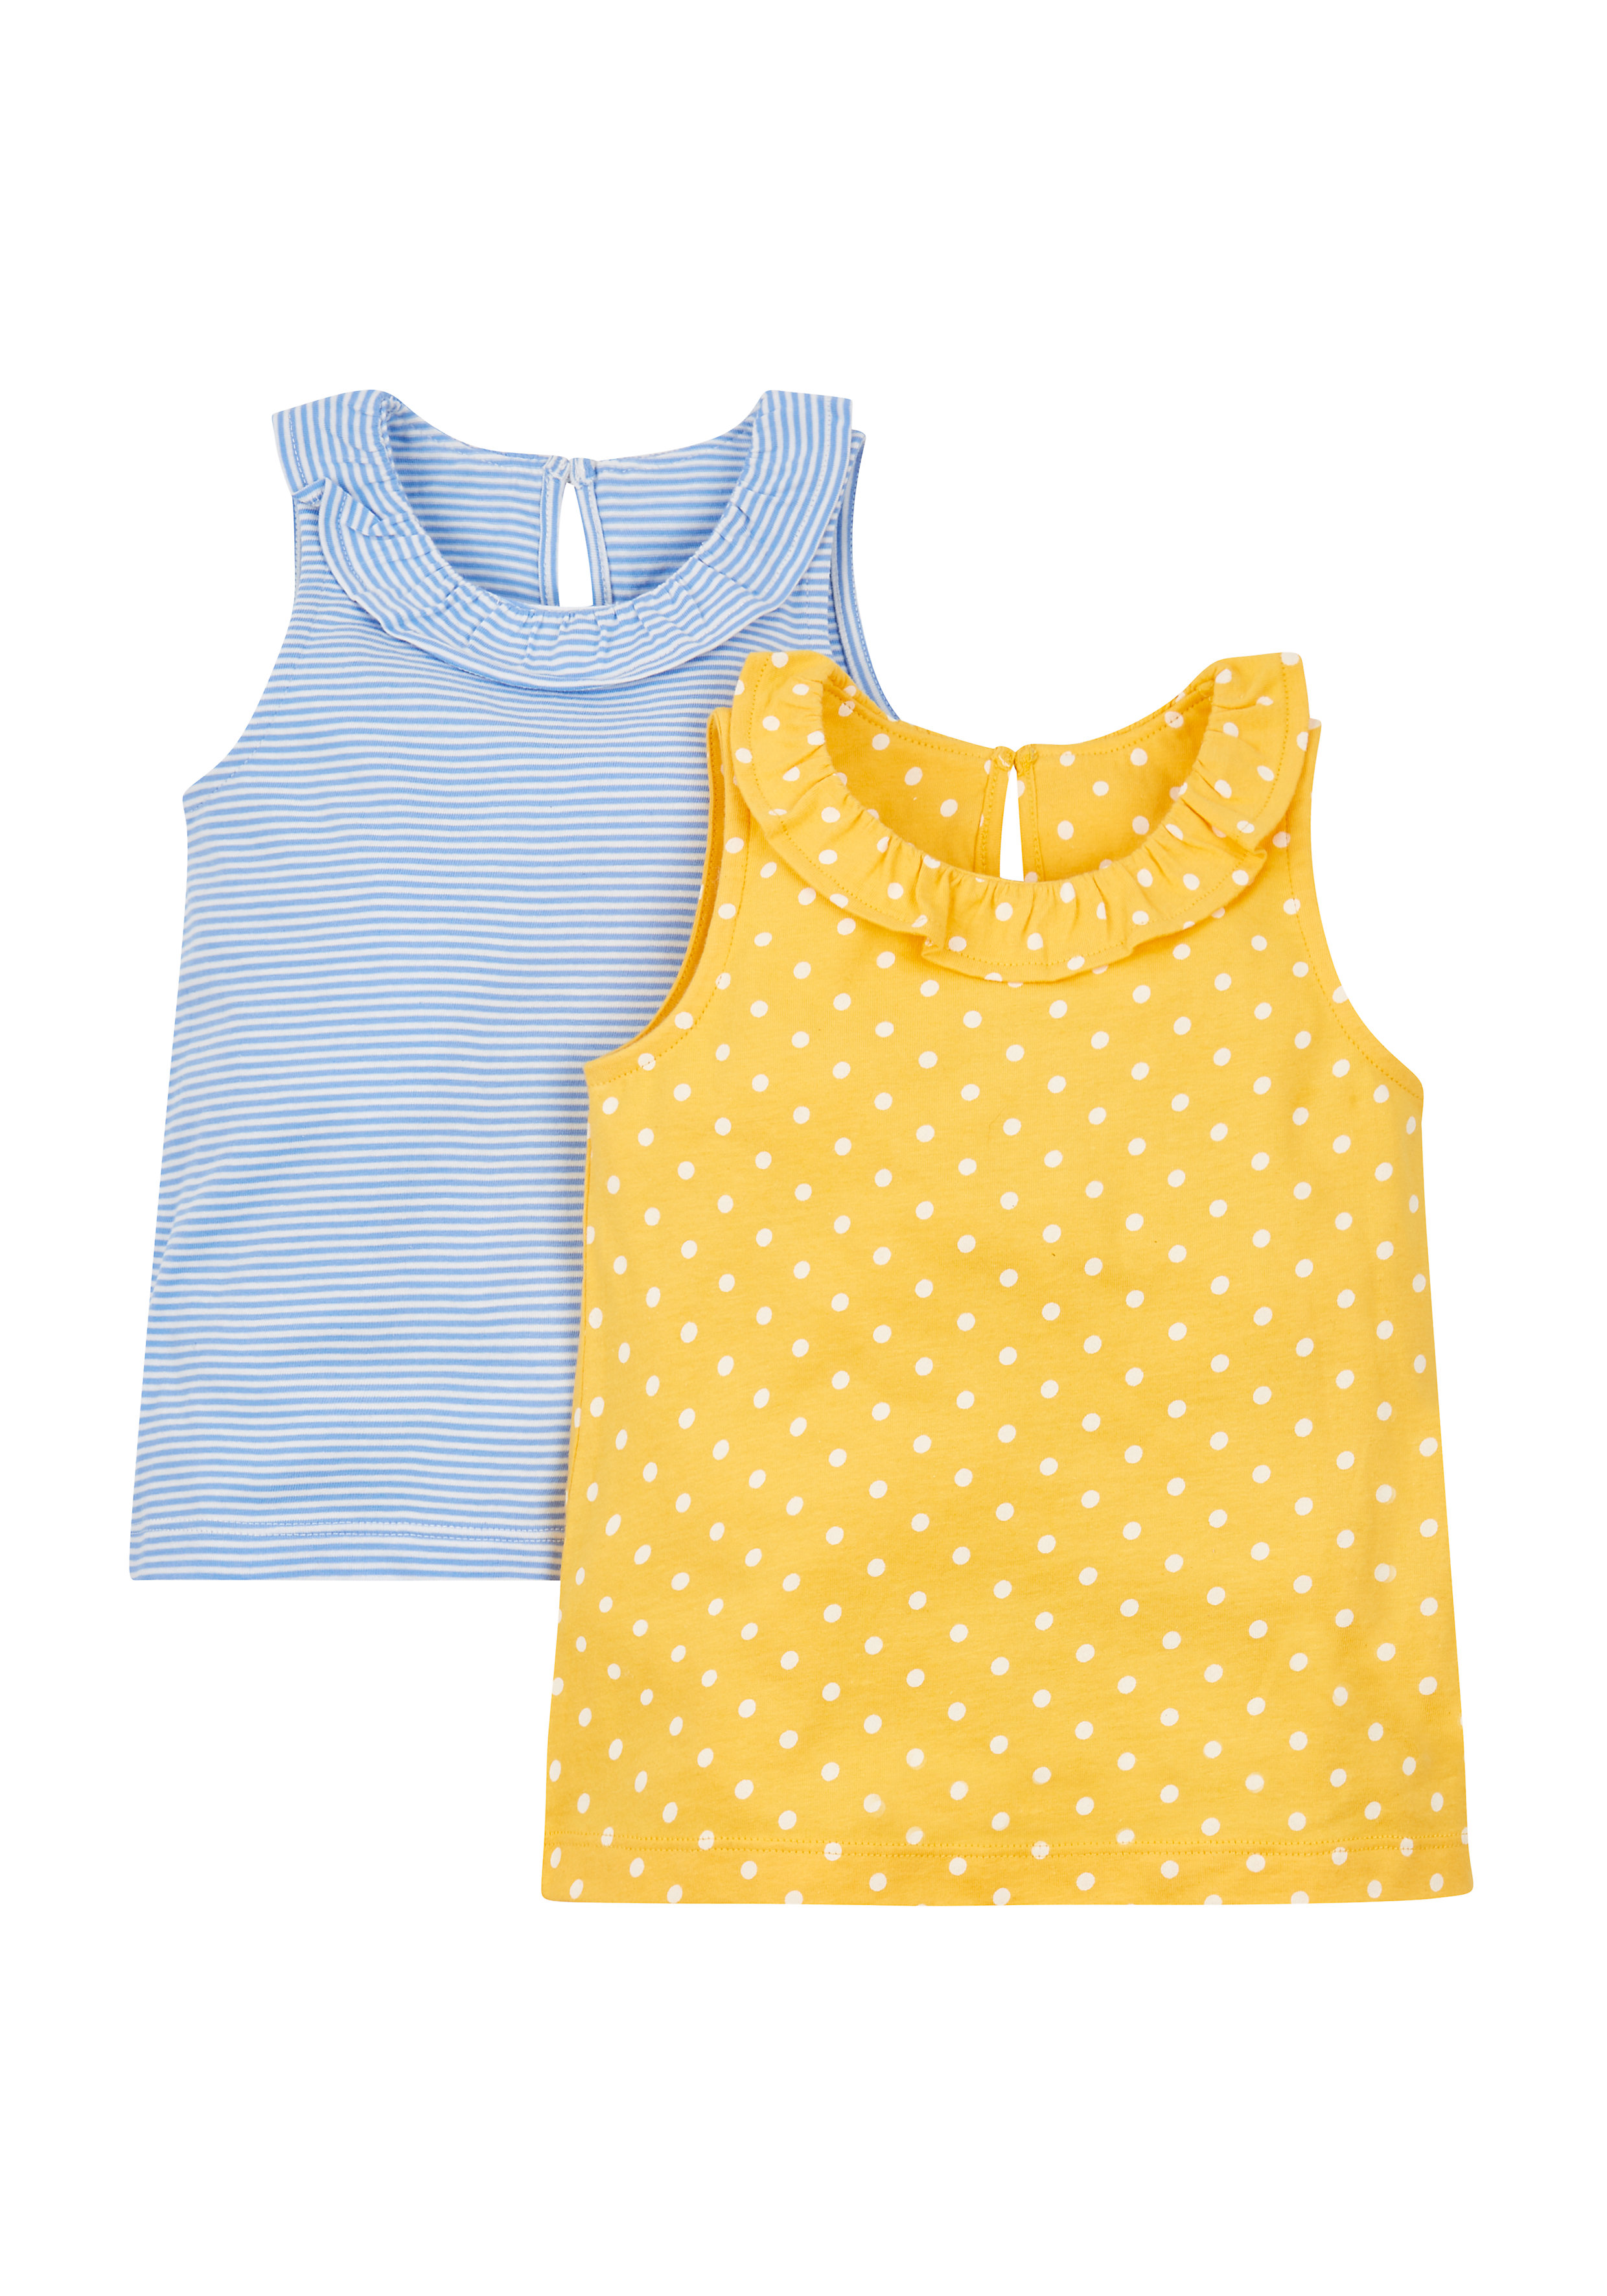 Mothercare   Girls Spotty And Stripy Vests - 2 Pack - Blue